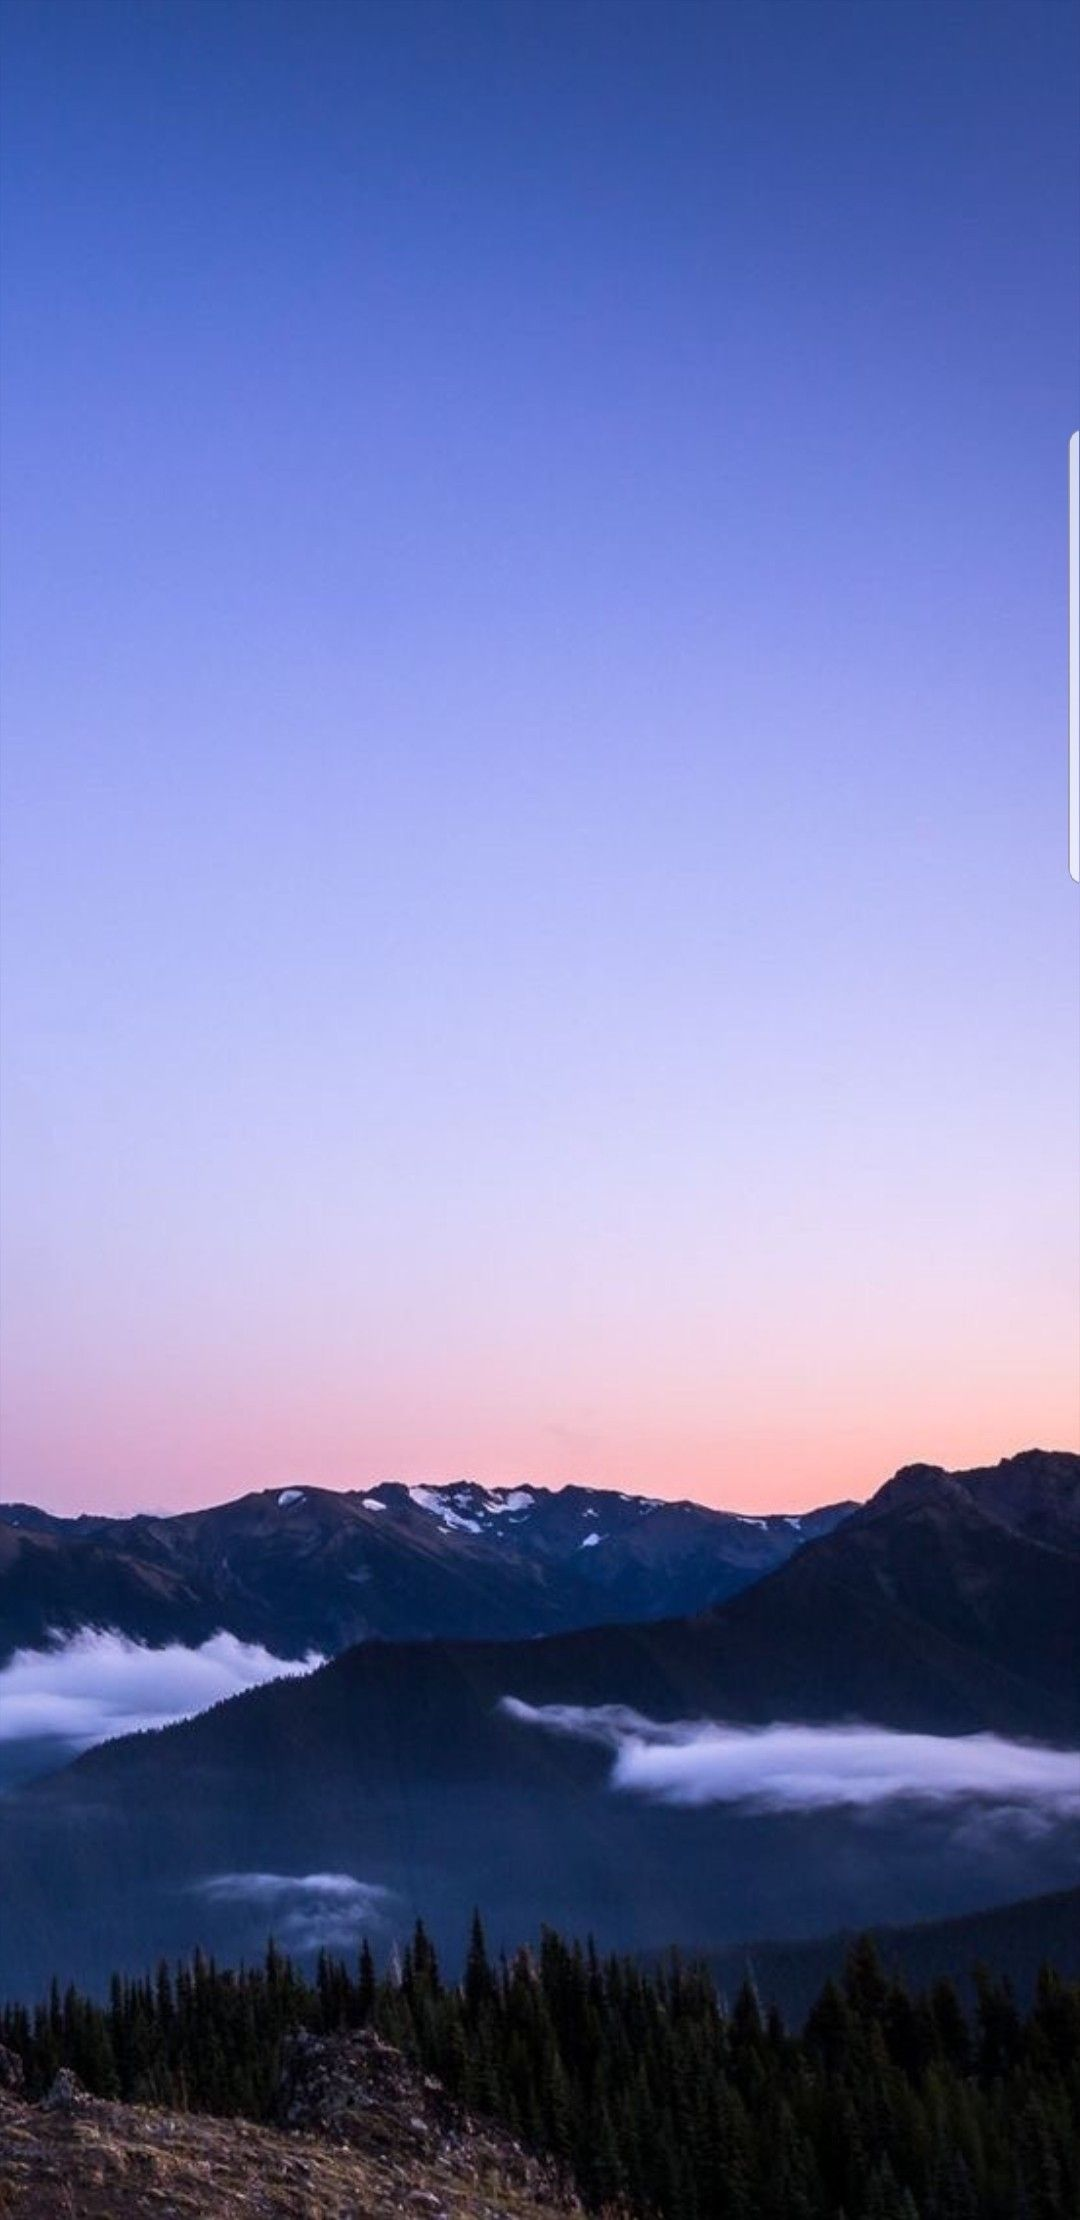 Pin By Naila Javeed On Wallpapers In 2019 Sunset Iphone